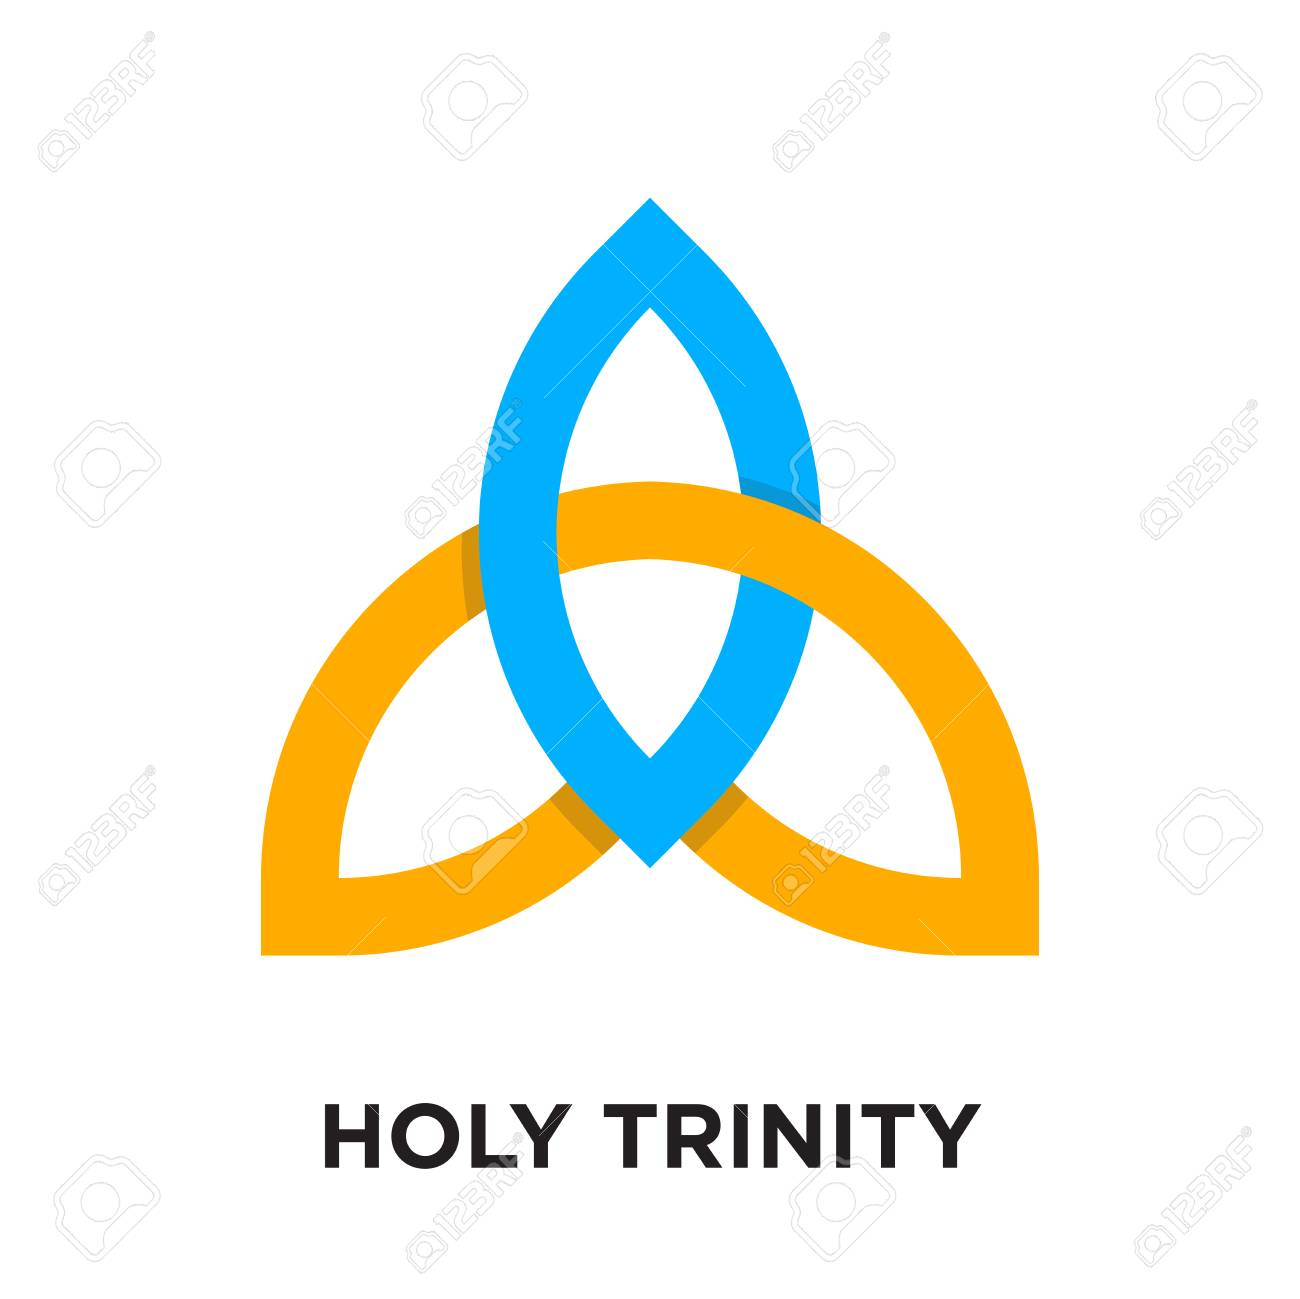 Holy Trinity Logo Isolated On White Background For Your Web And